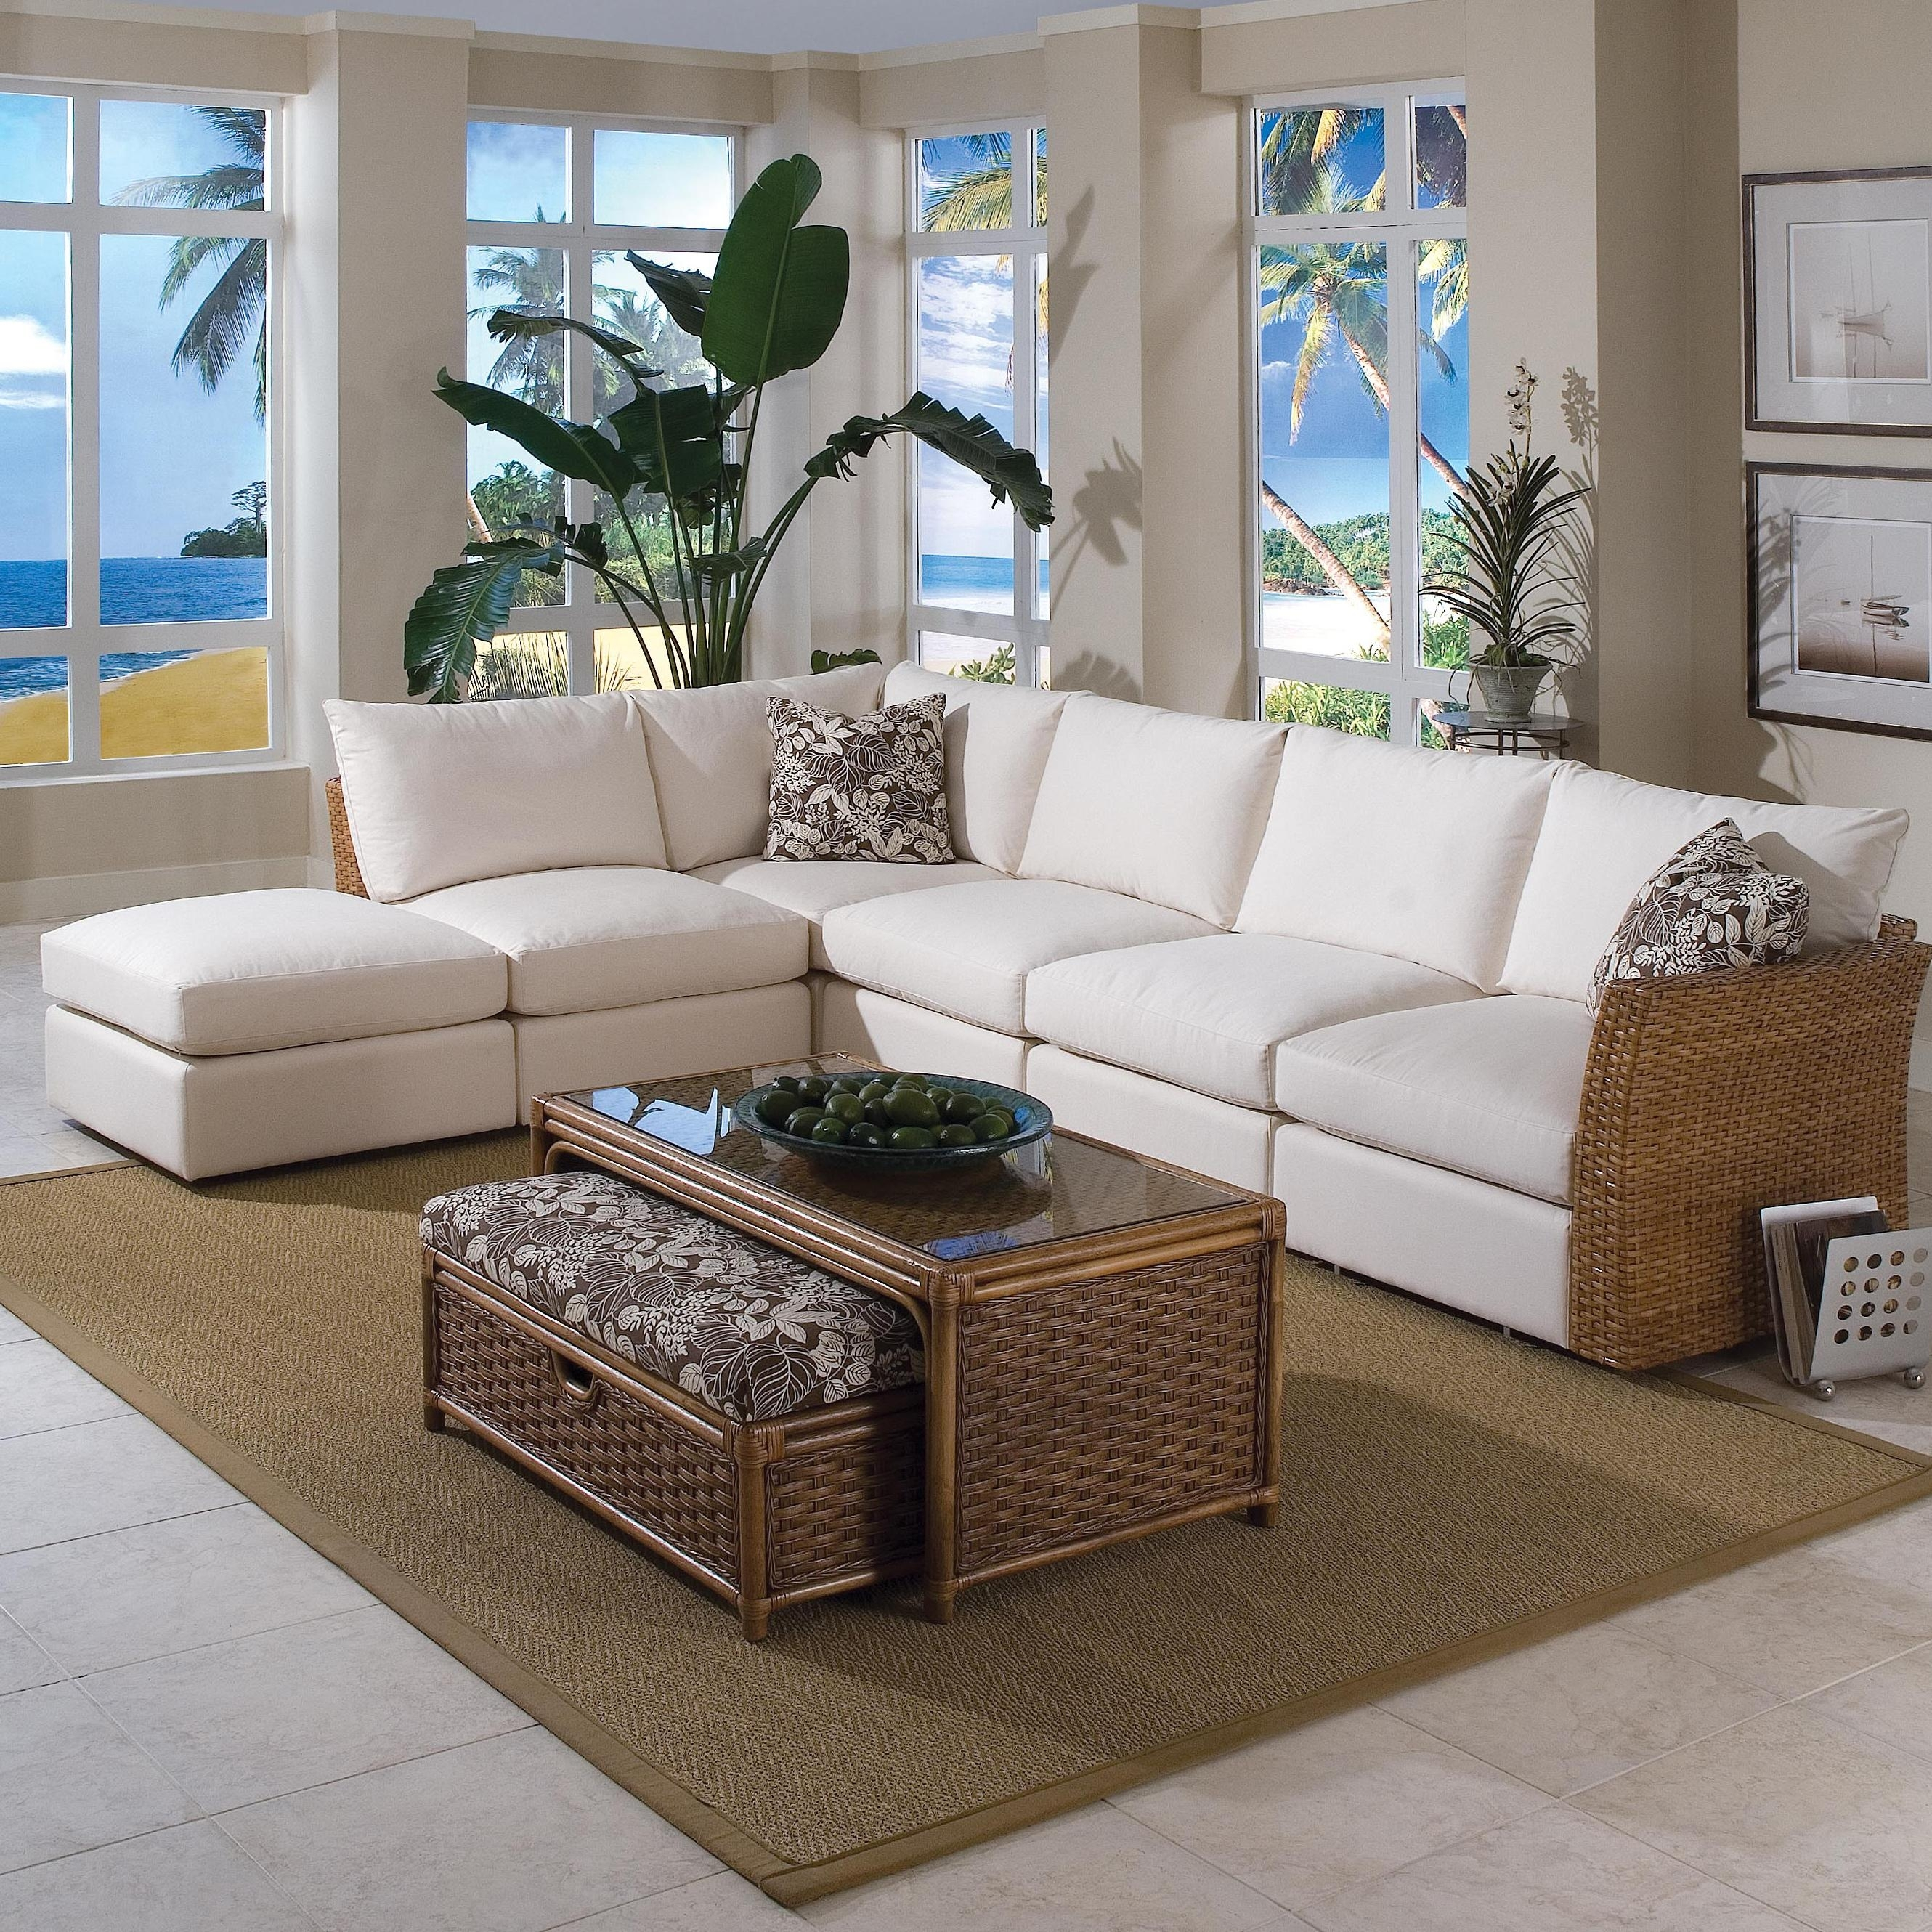 Braxton Culler Grand Water Point Tropical Sectional Sofa With Two With Regard To Johnson City Tn Sectional Sofas (Image 1 of 10)